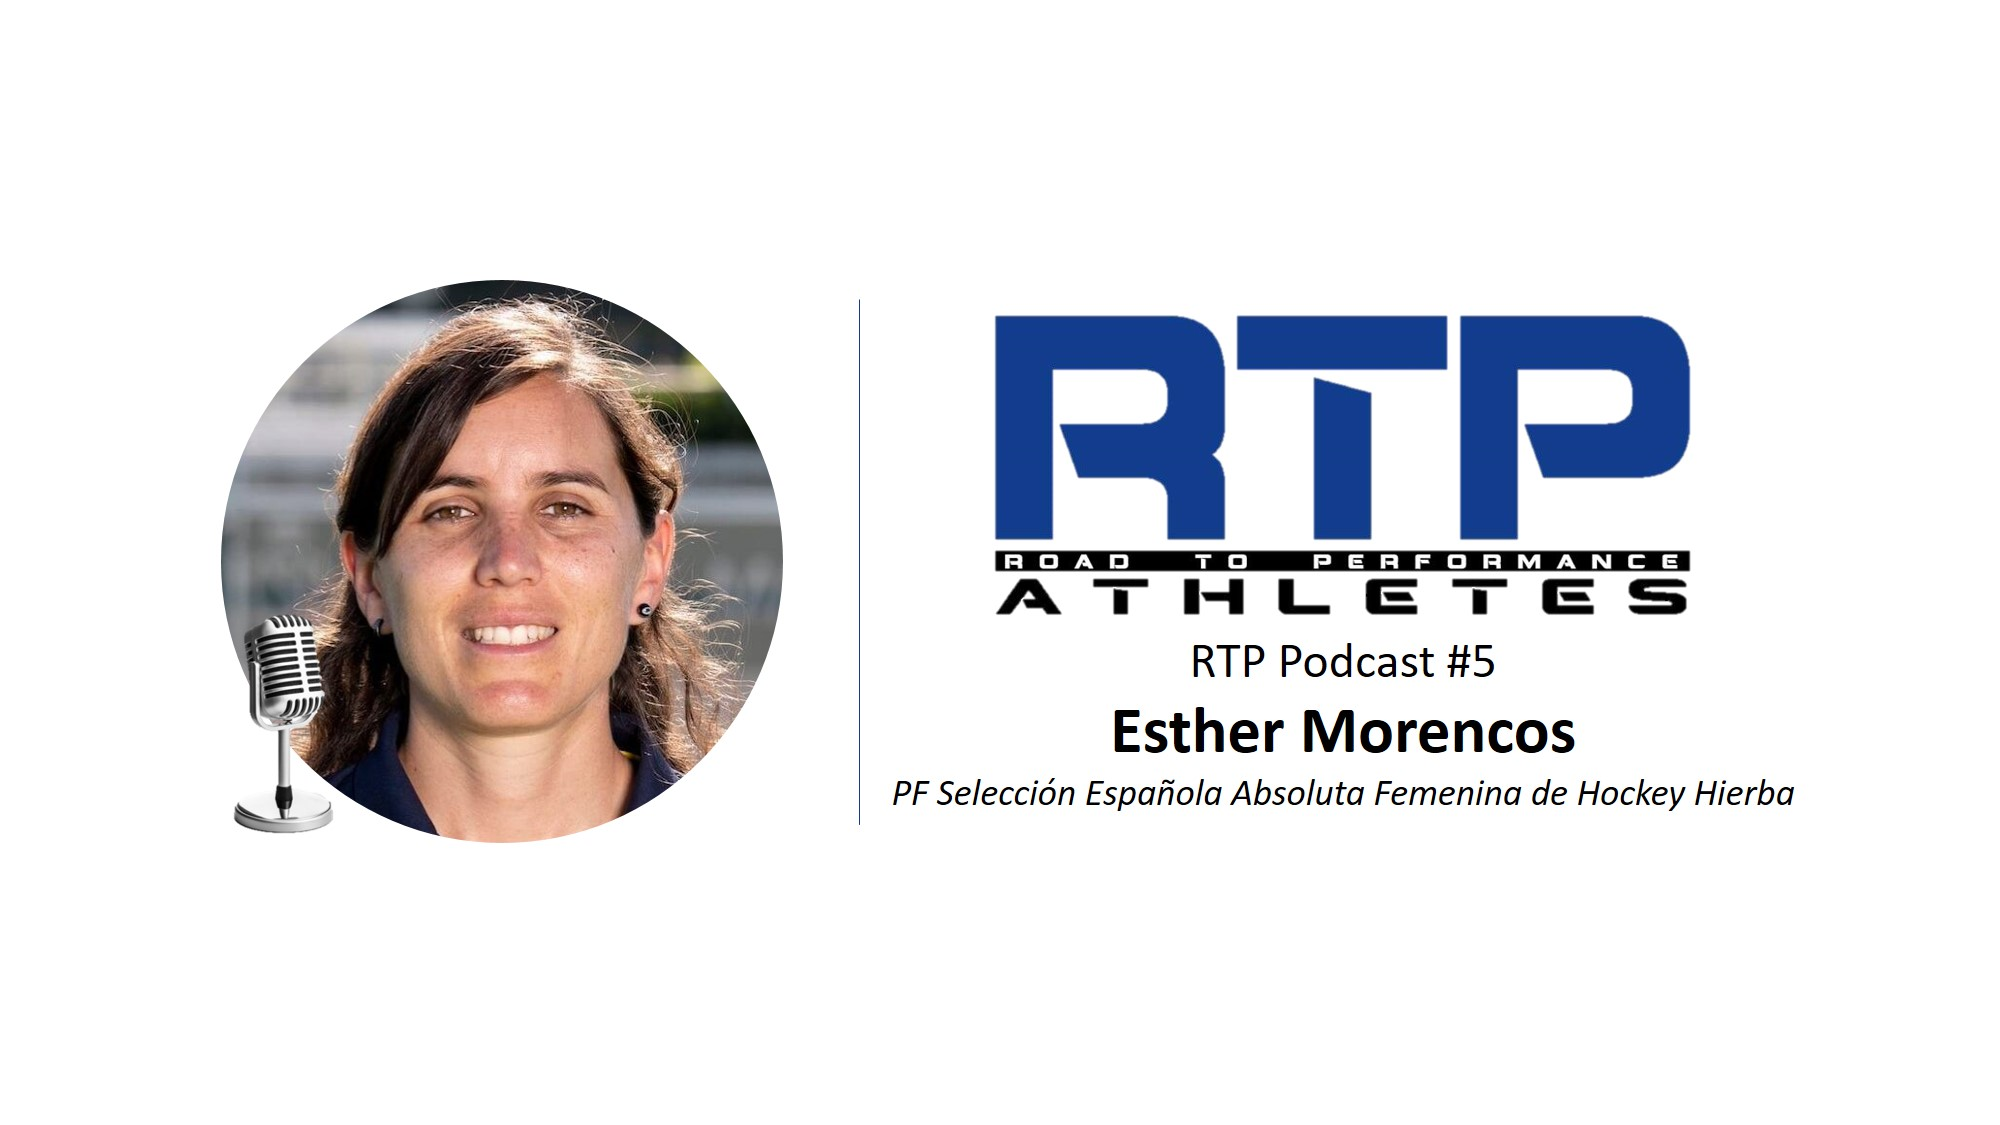 RTP Podcast #5 – Esther Morencos